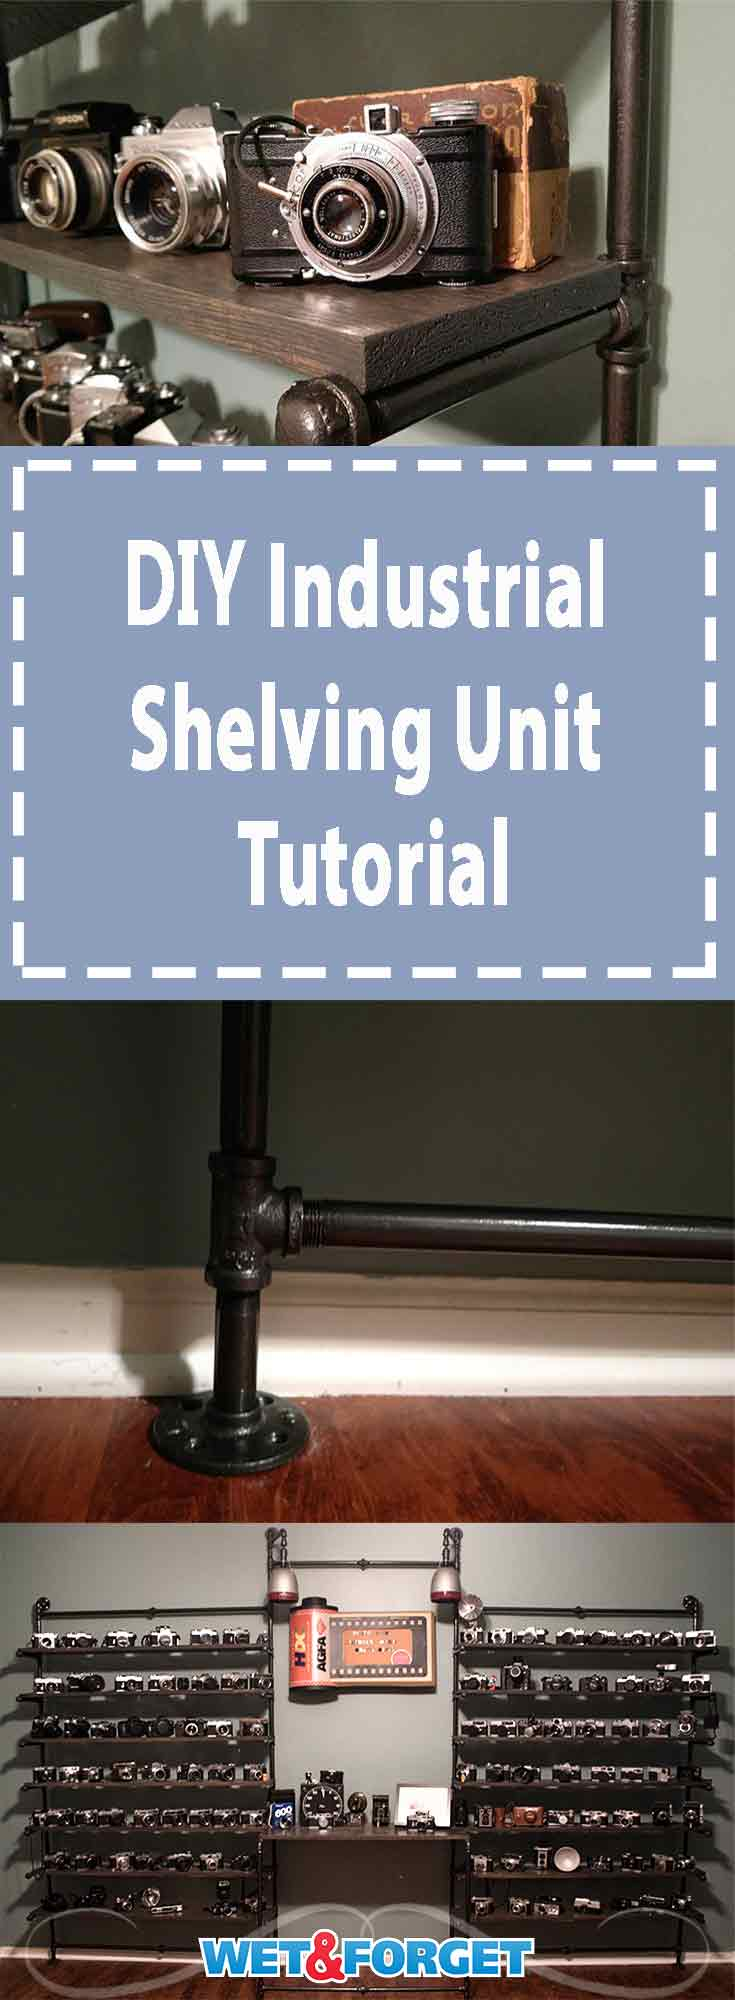 DIY Industrial Shelving Unit Tutorial